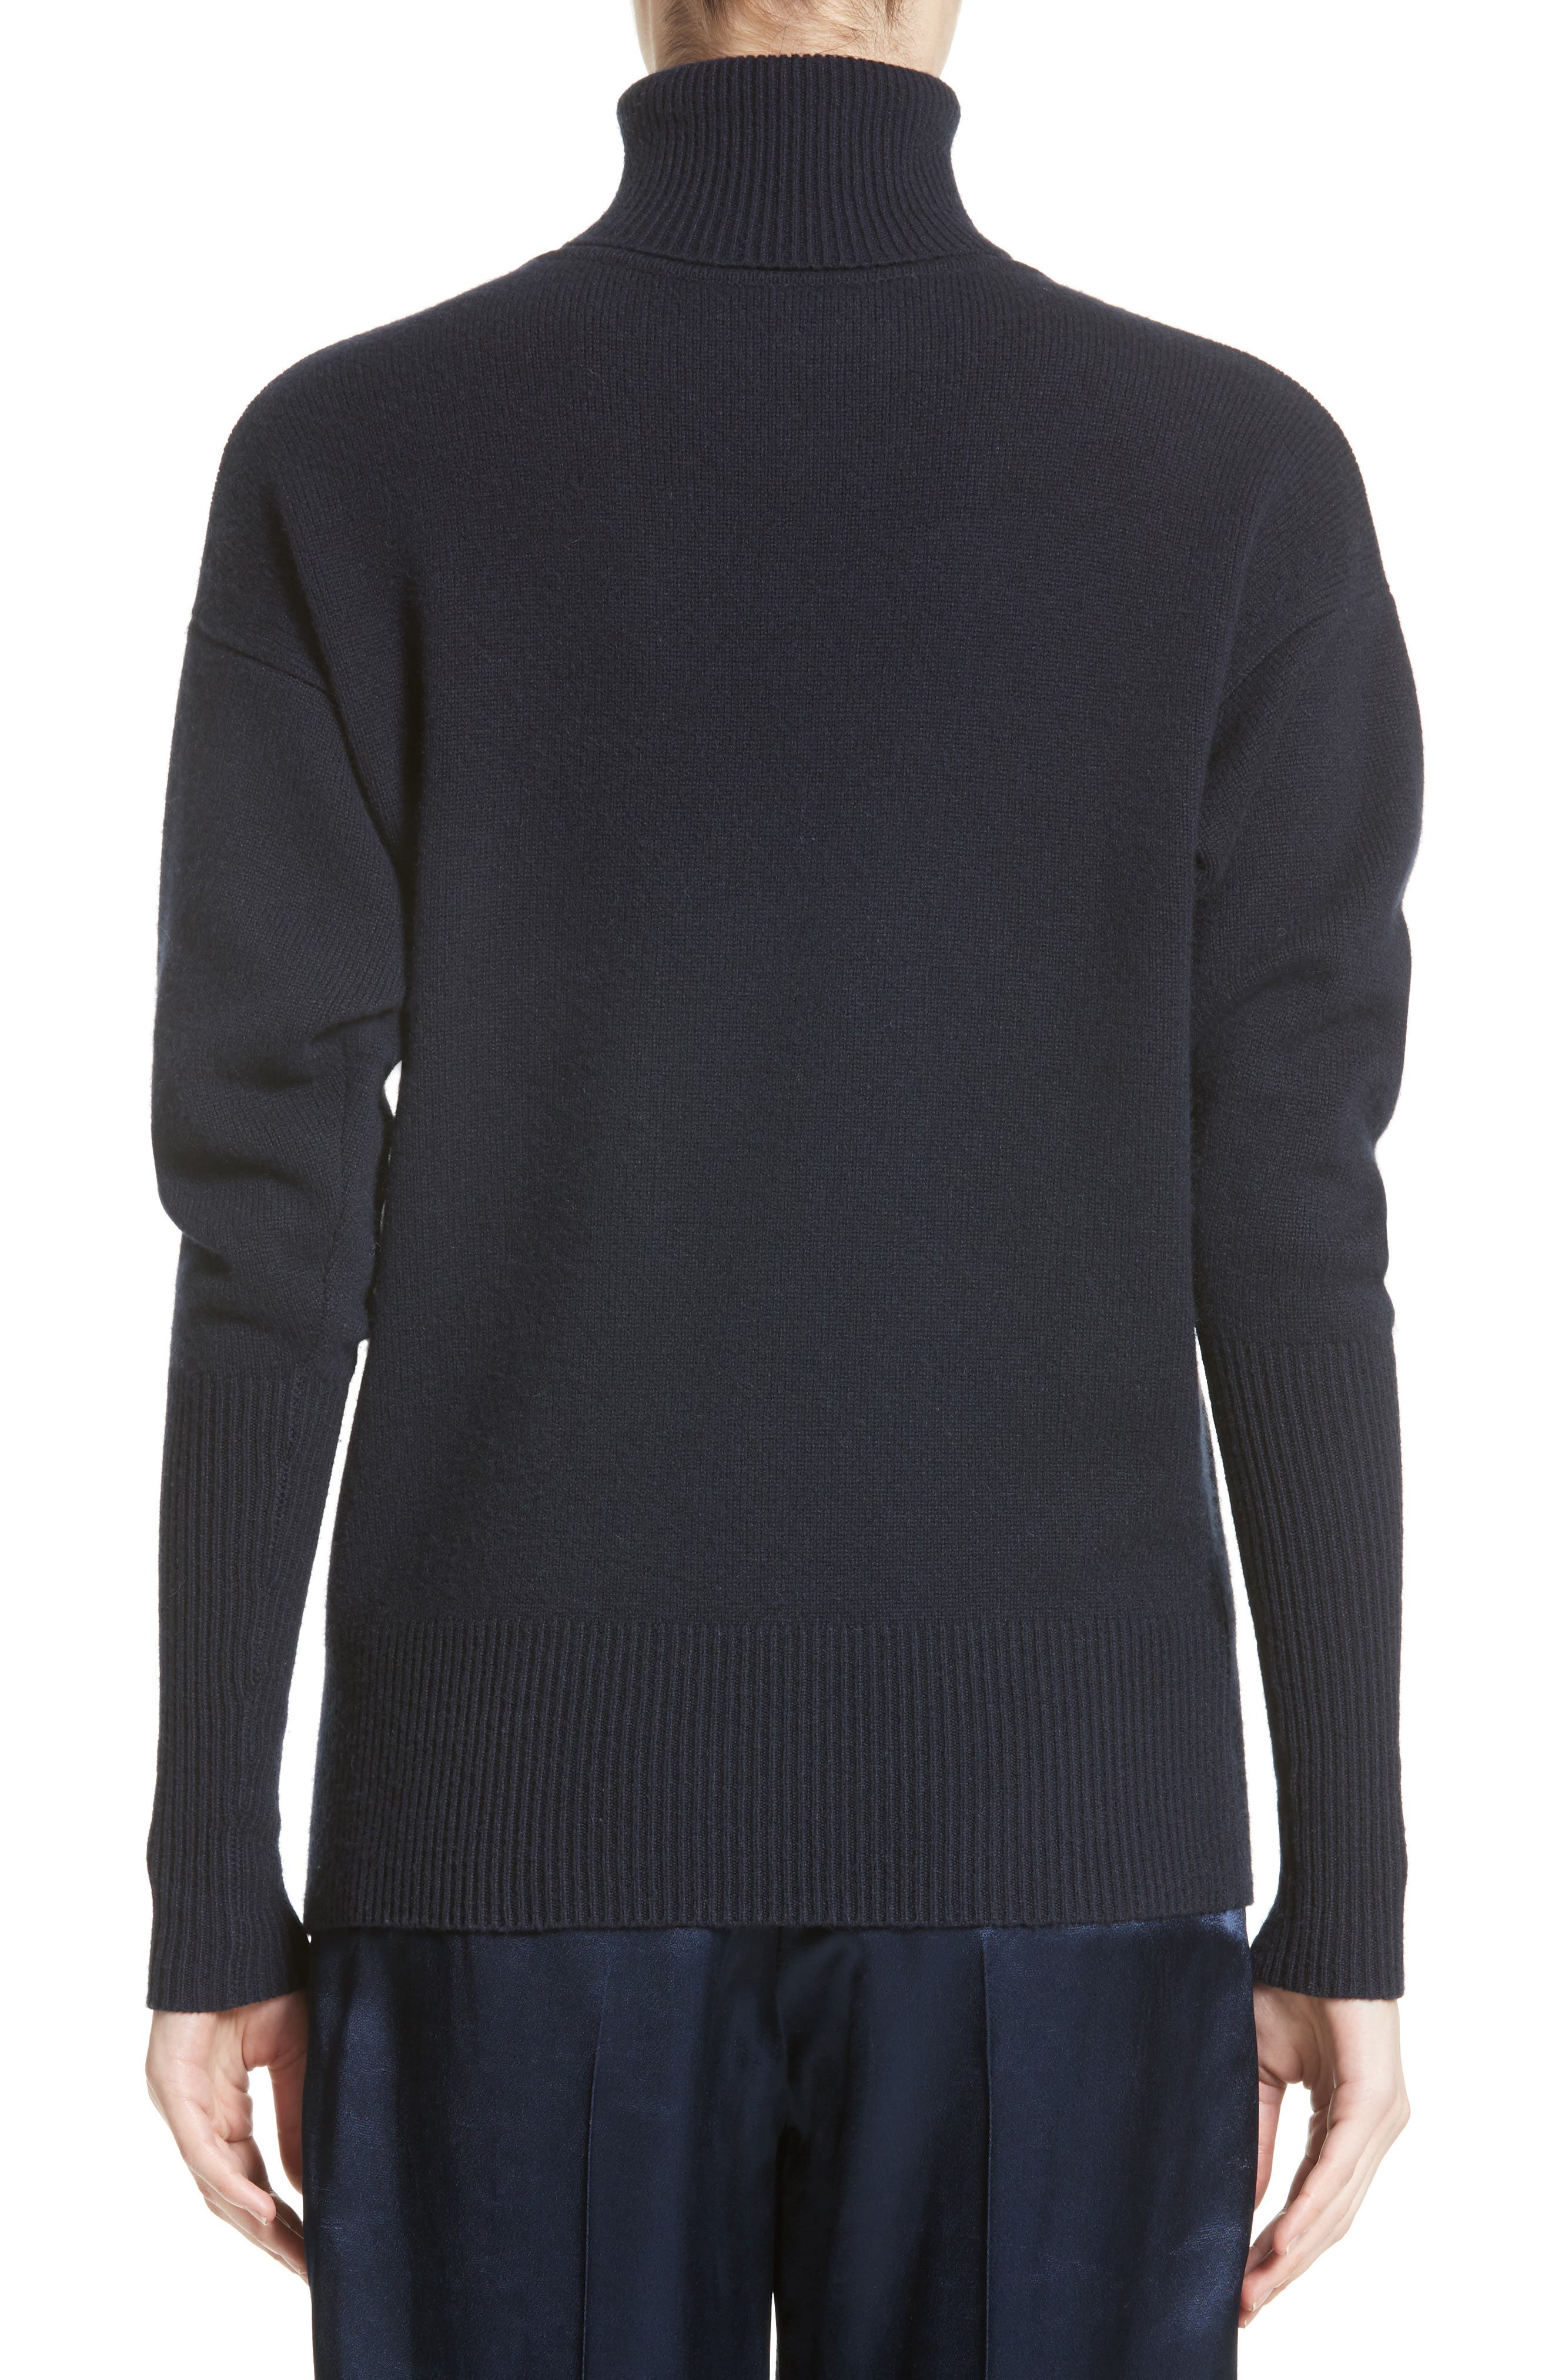 Alternate Image 3  - Victoria Beckham Cashmere Turtleneck Sweater